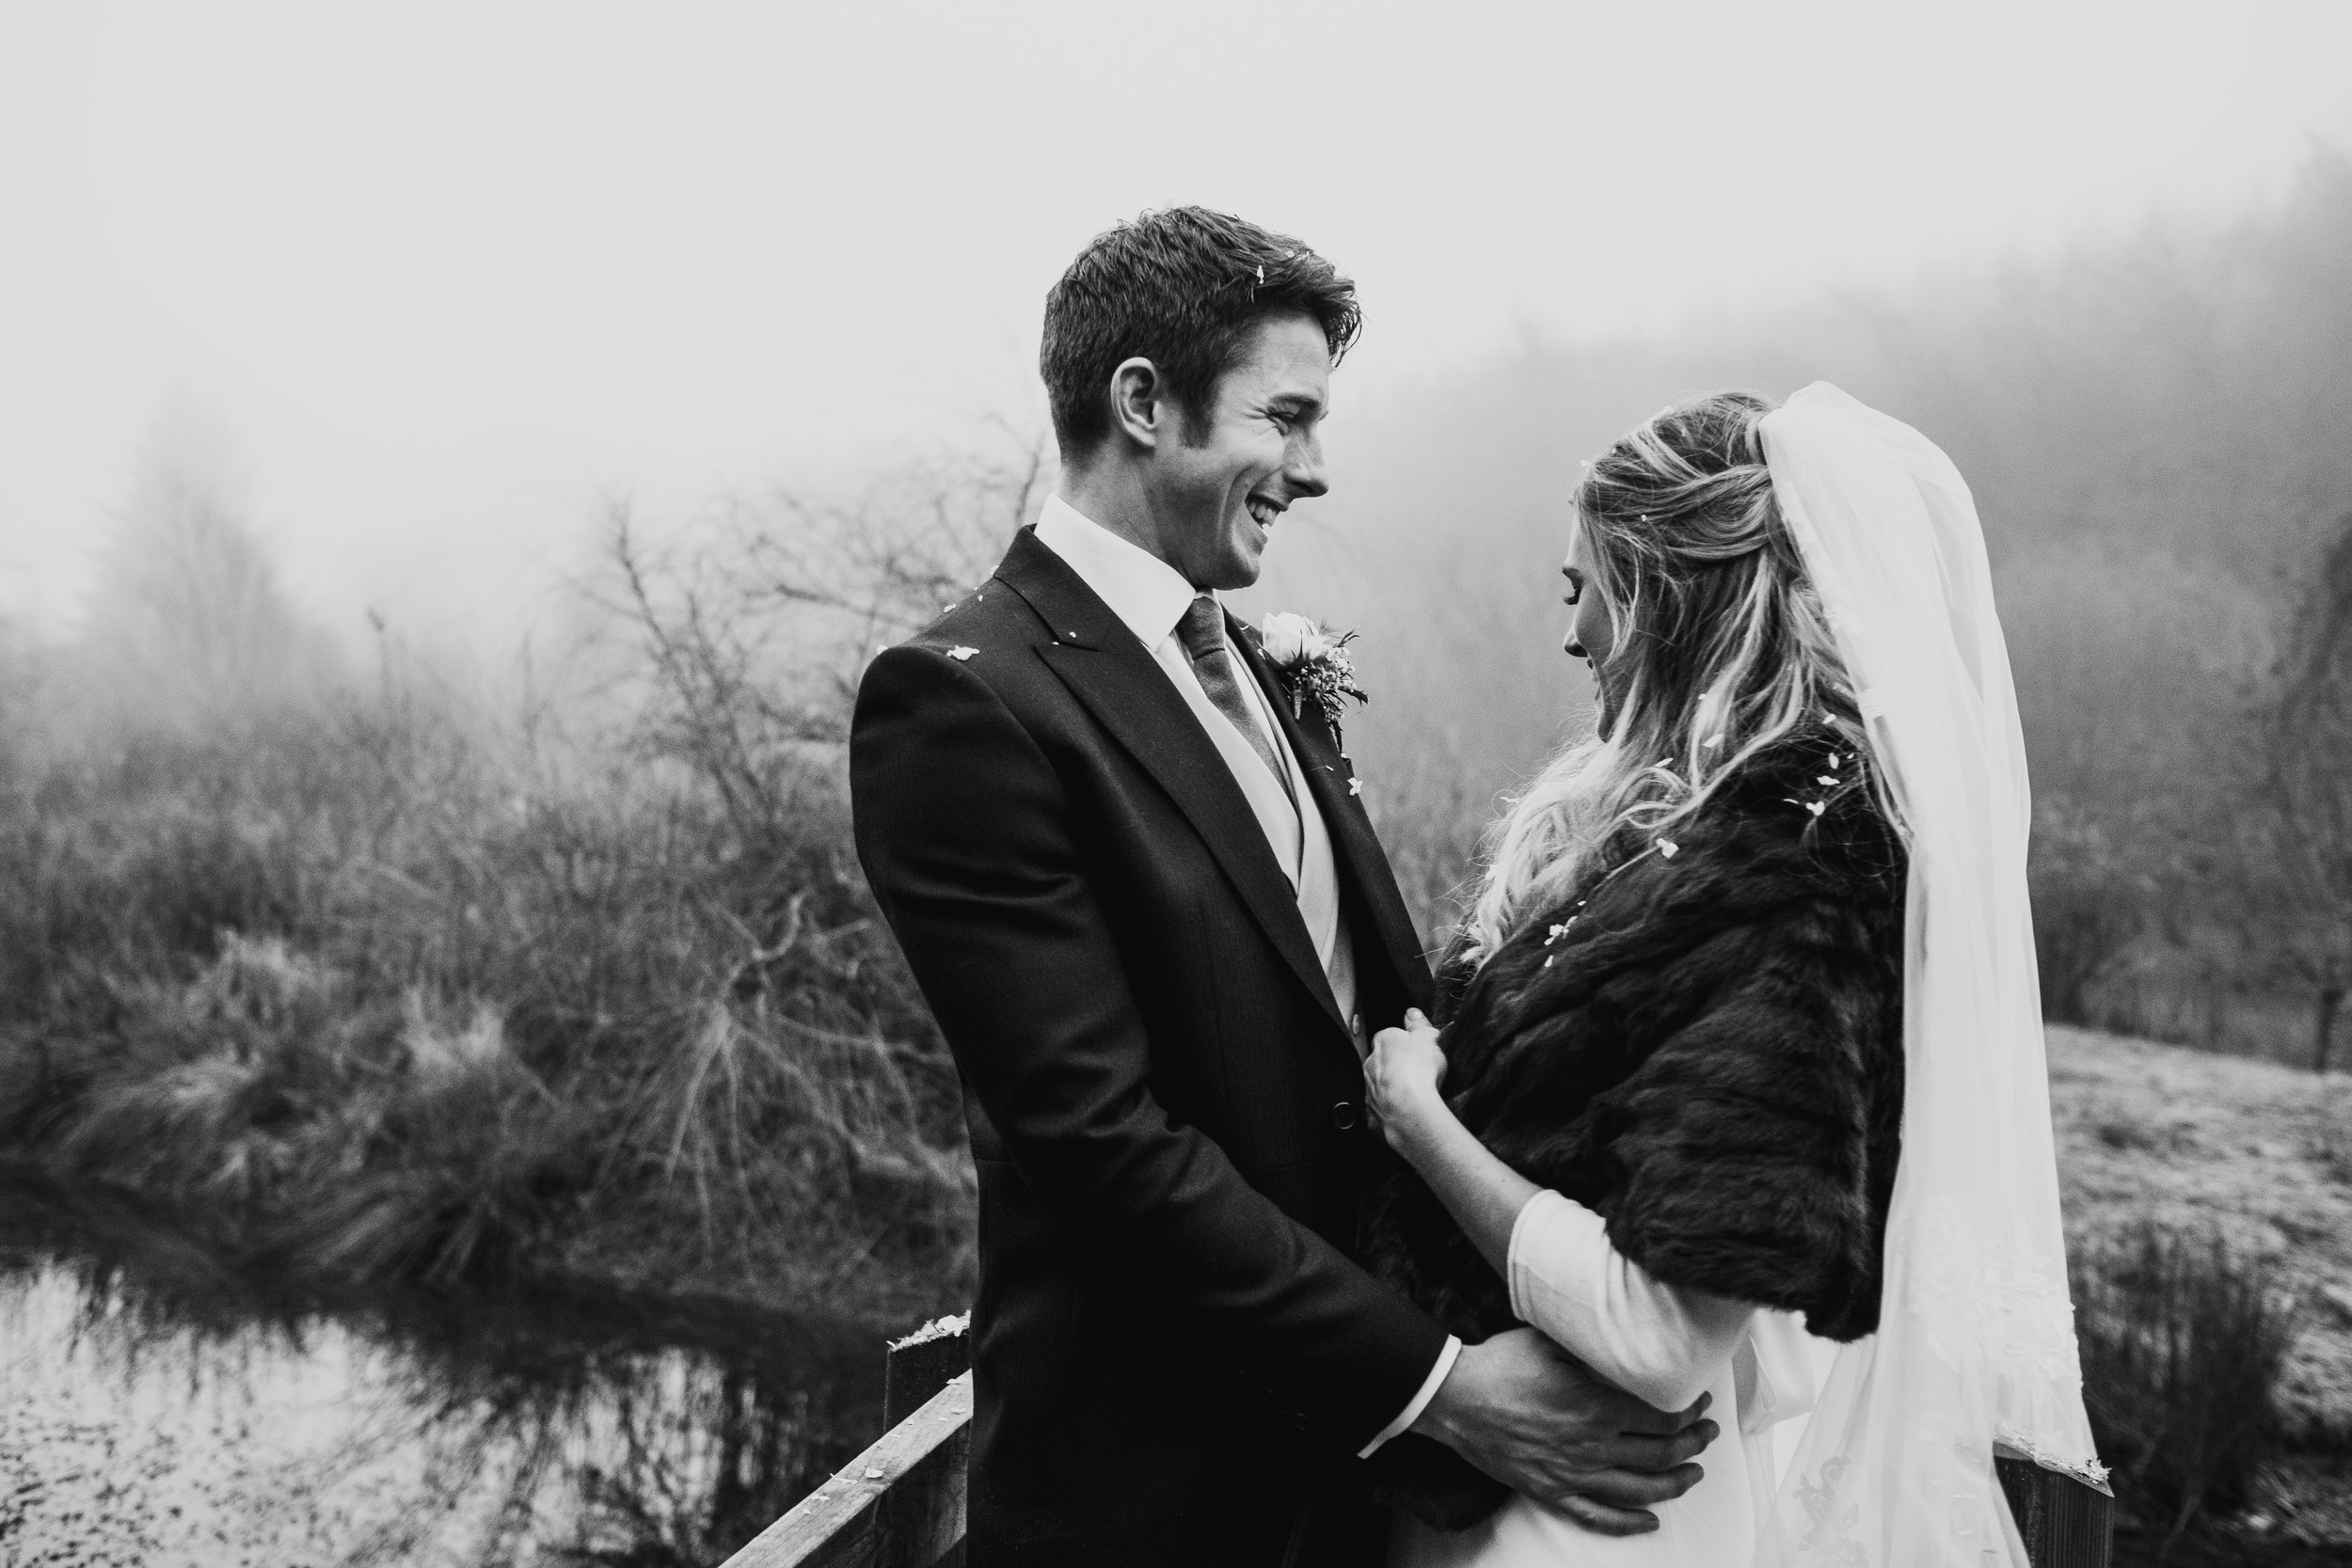 Bride and groom embrace each other outside on a bridge